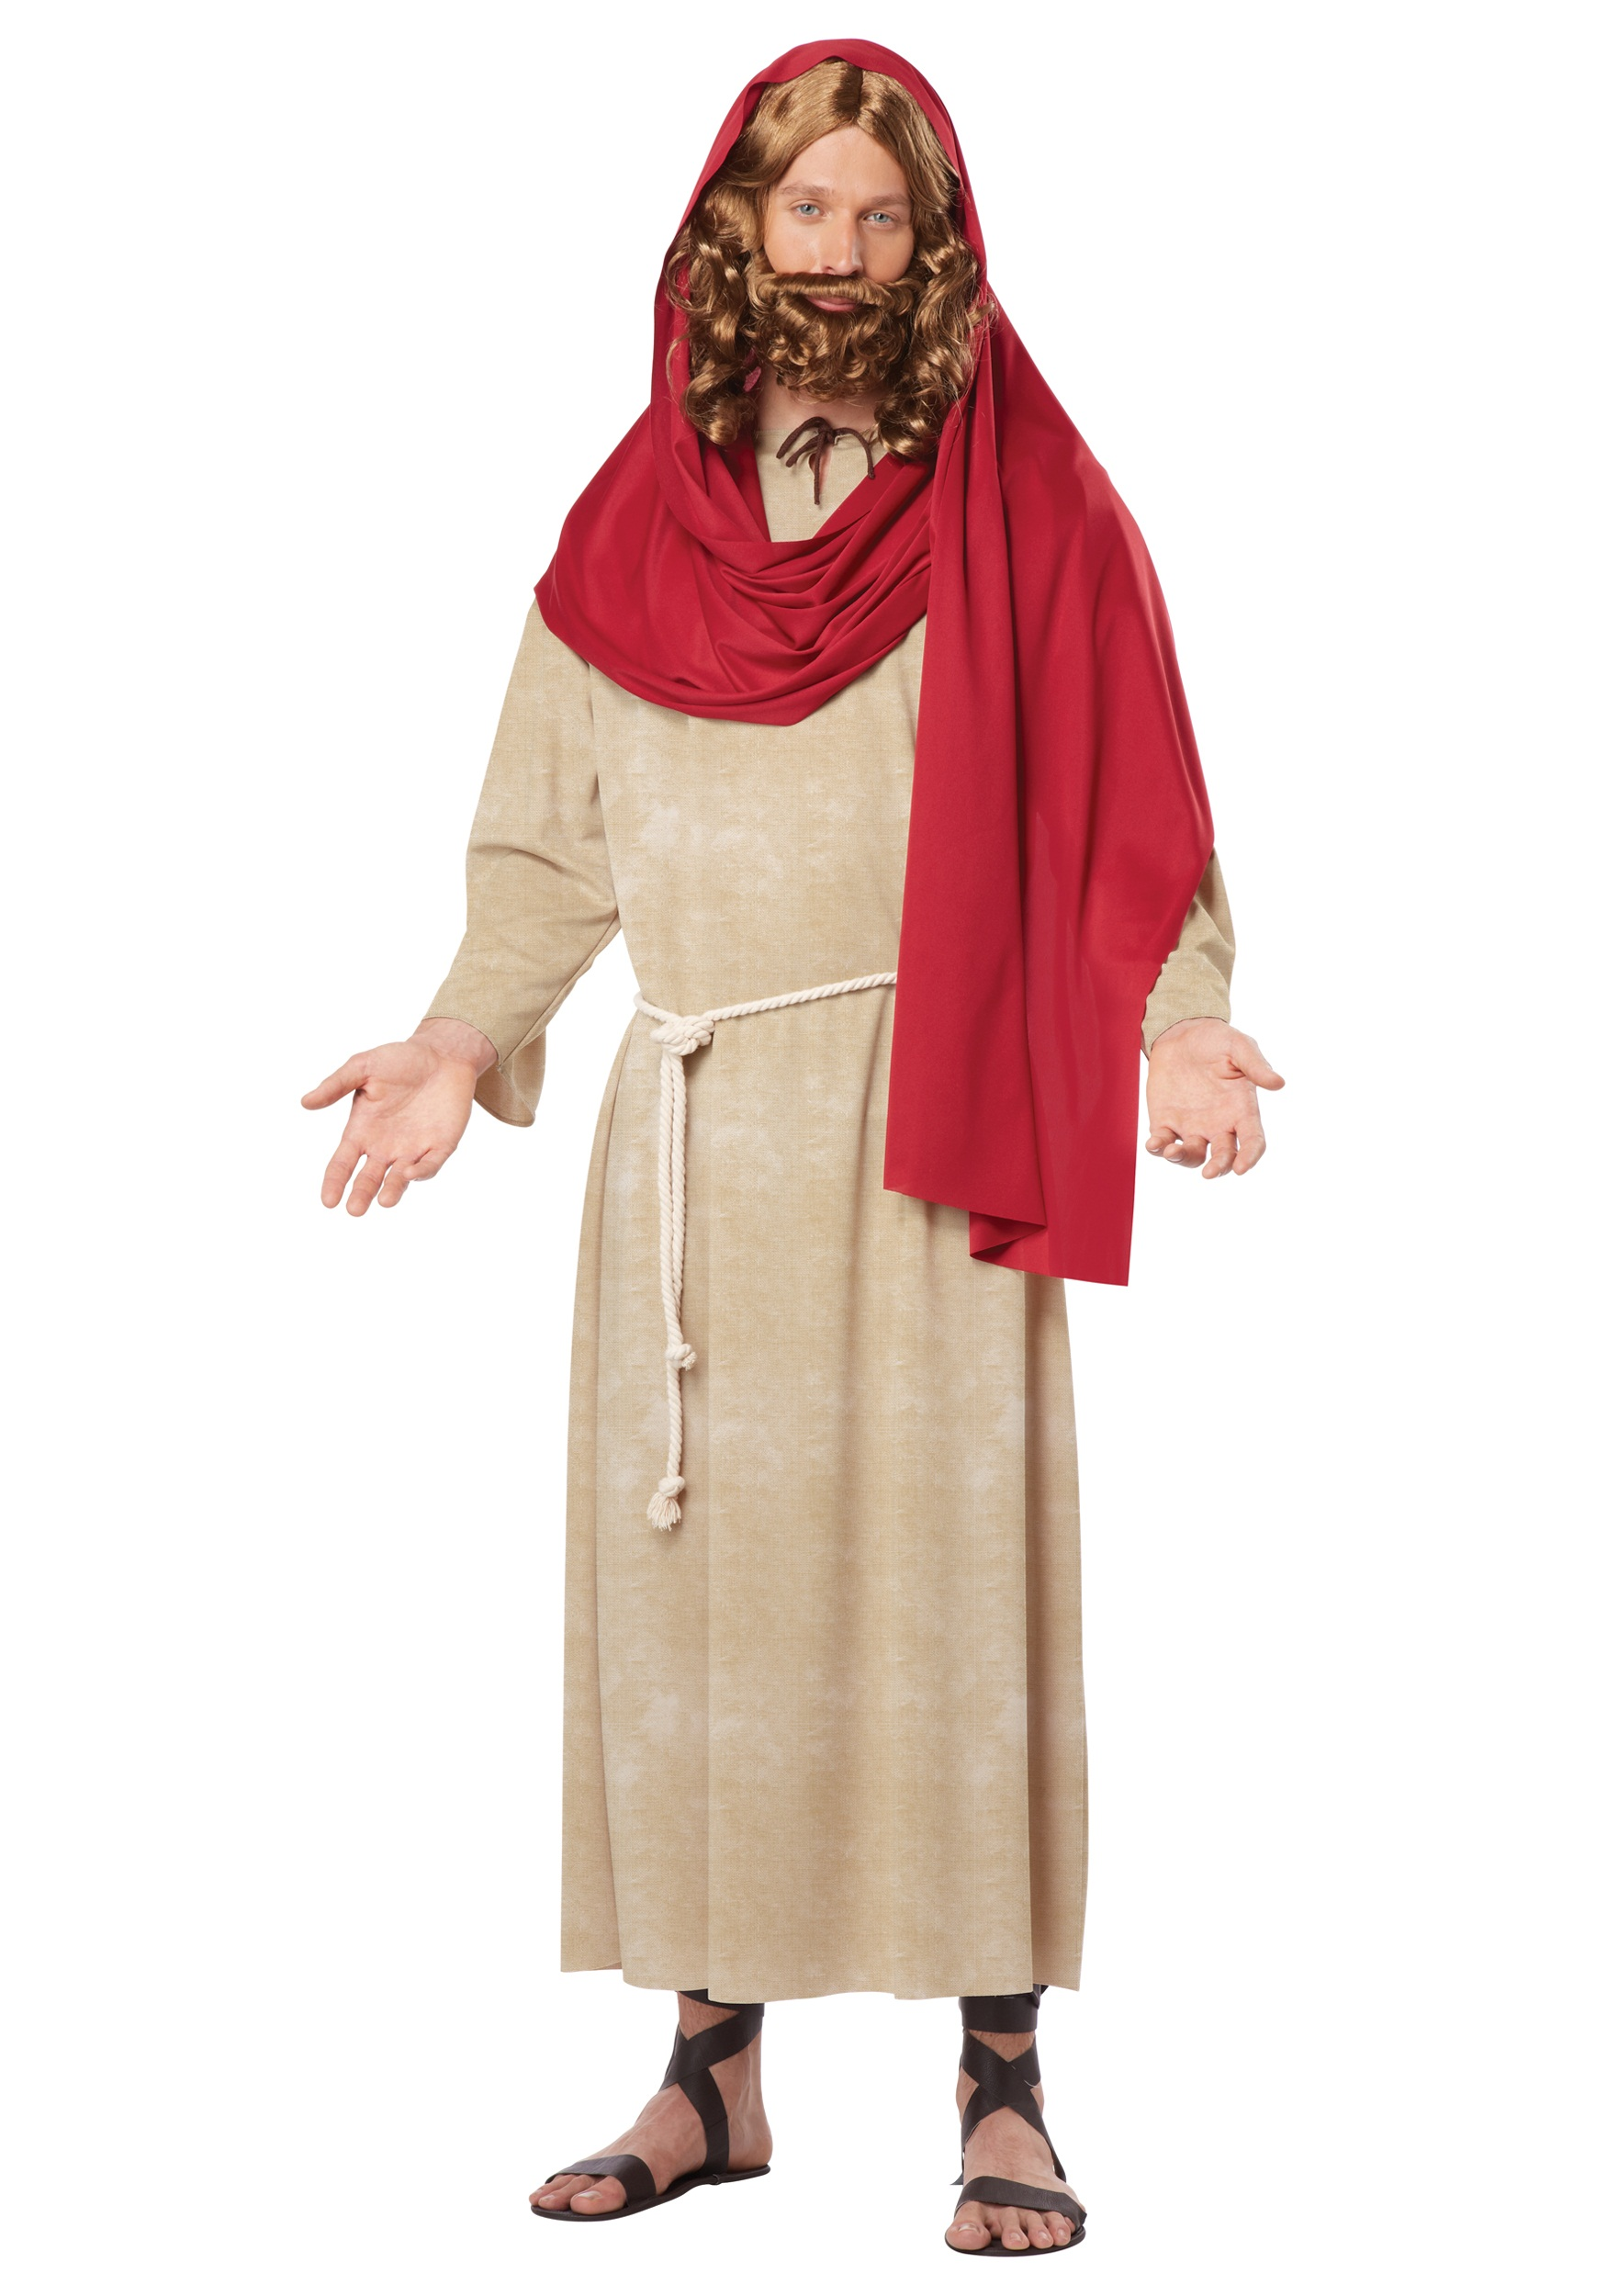 Nun priest and religious halloween costumes adult jesus christ costume solutioingenieria Gallery